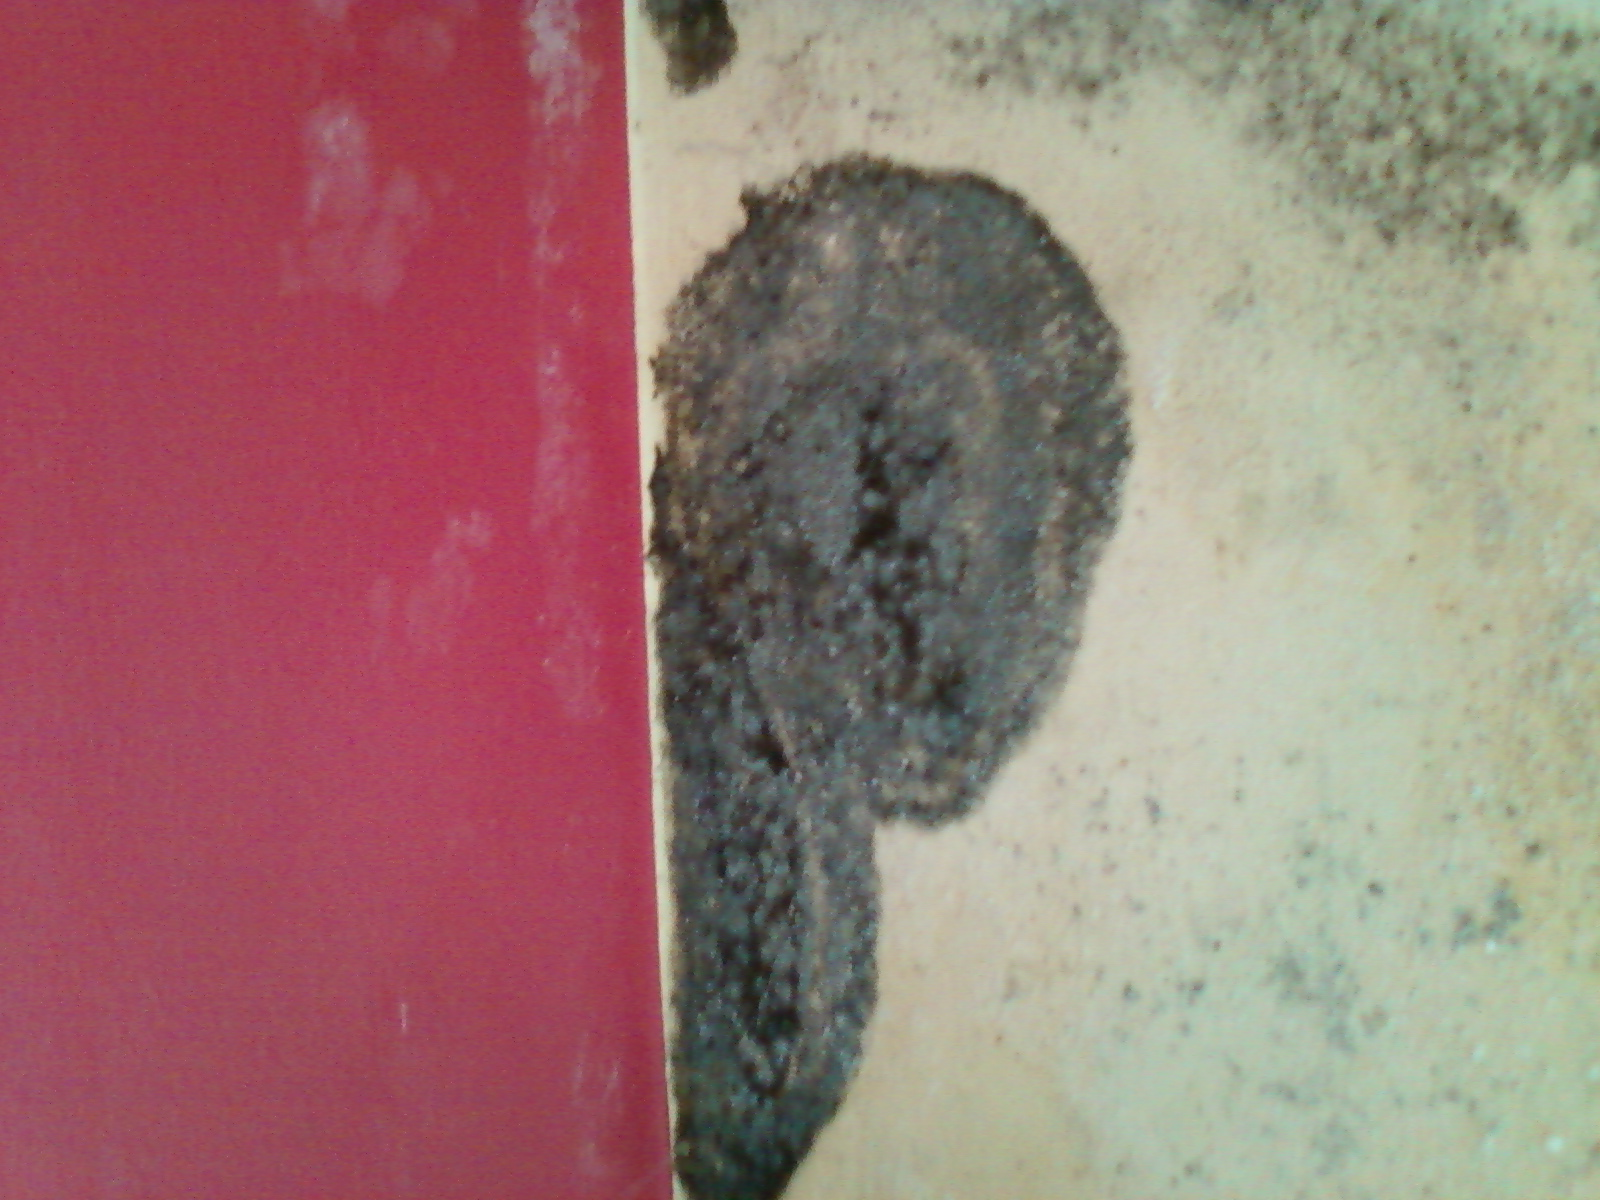 Mould contamination of the wall